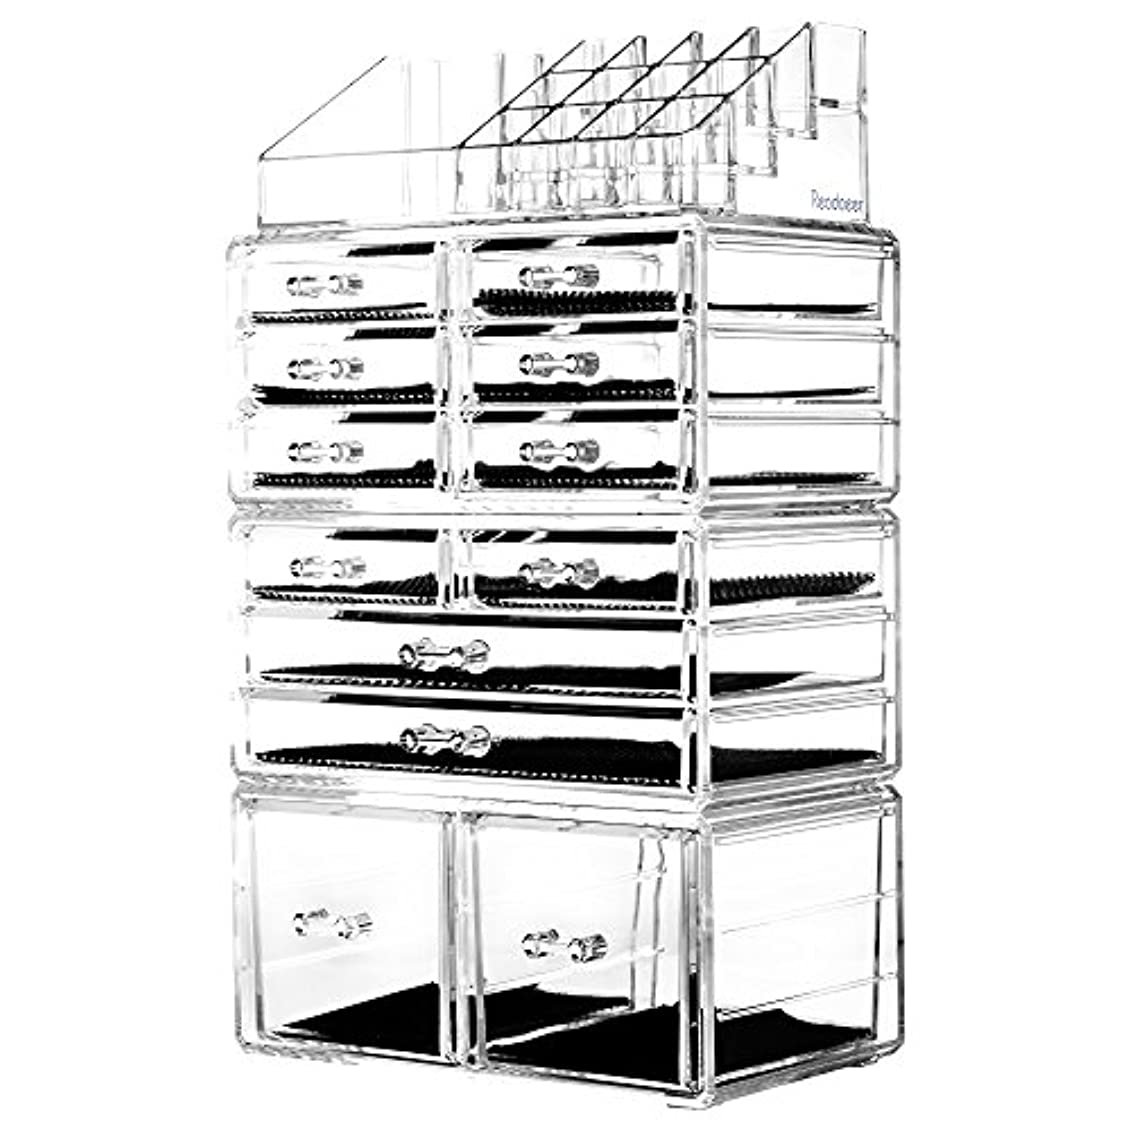 シール緊張資料(Clear) - Readaeer Makeup Cosmetic Organiser Storage Drawers Display Boxes Case with 12 Drawers(Clear)